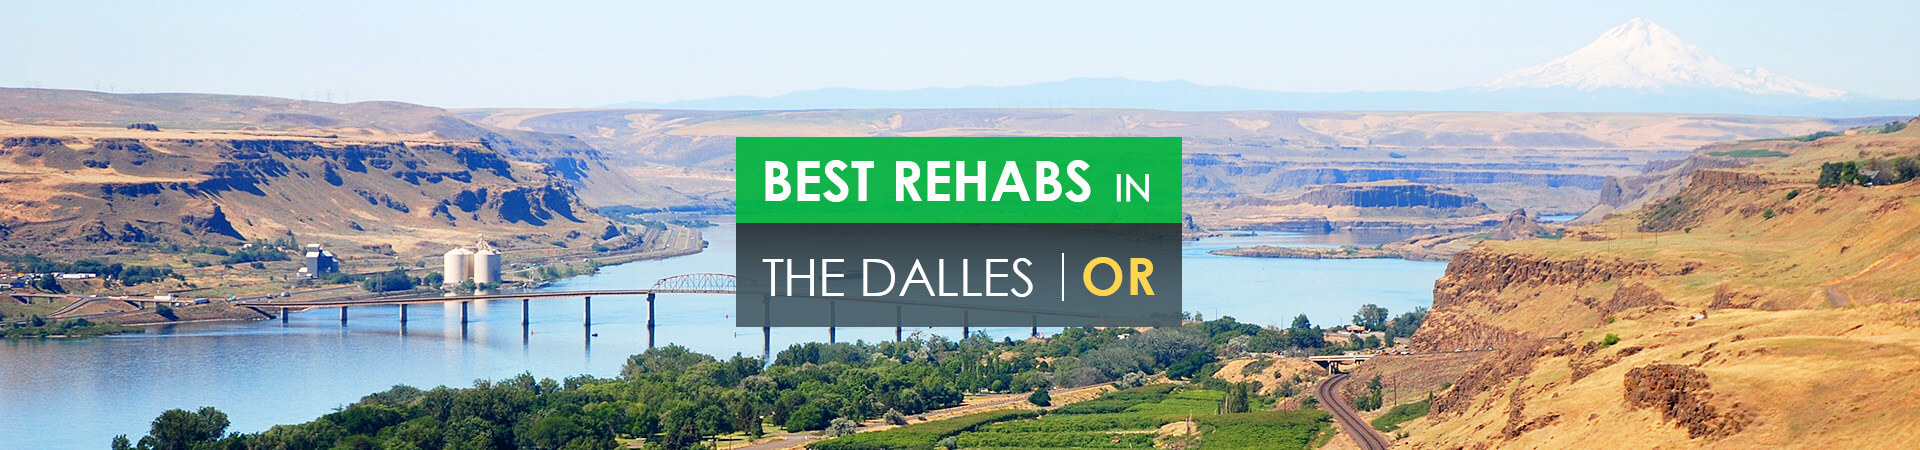 Best rehabs in The Dalles, OR